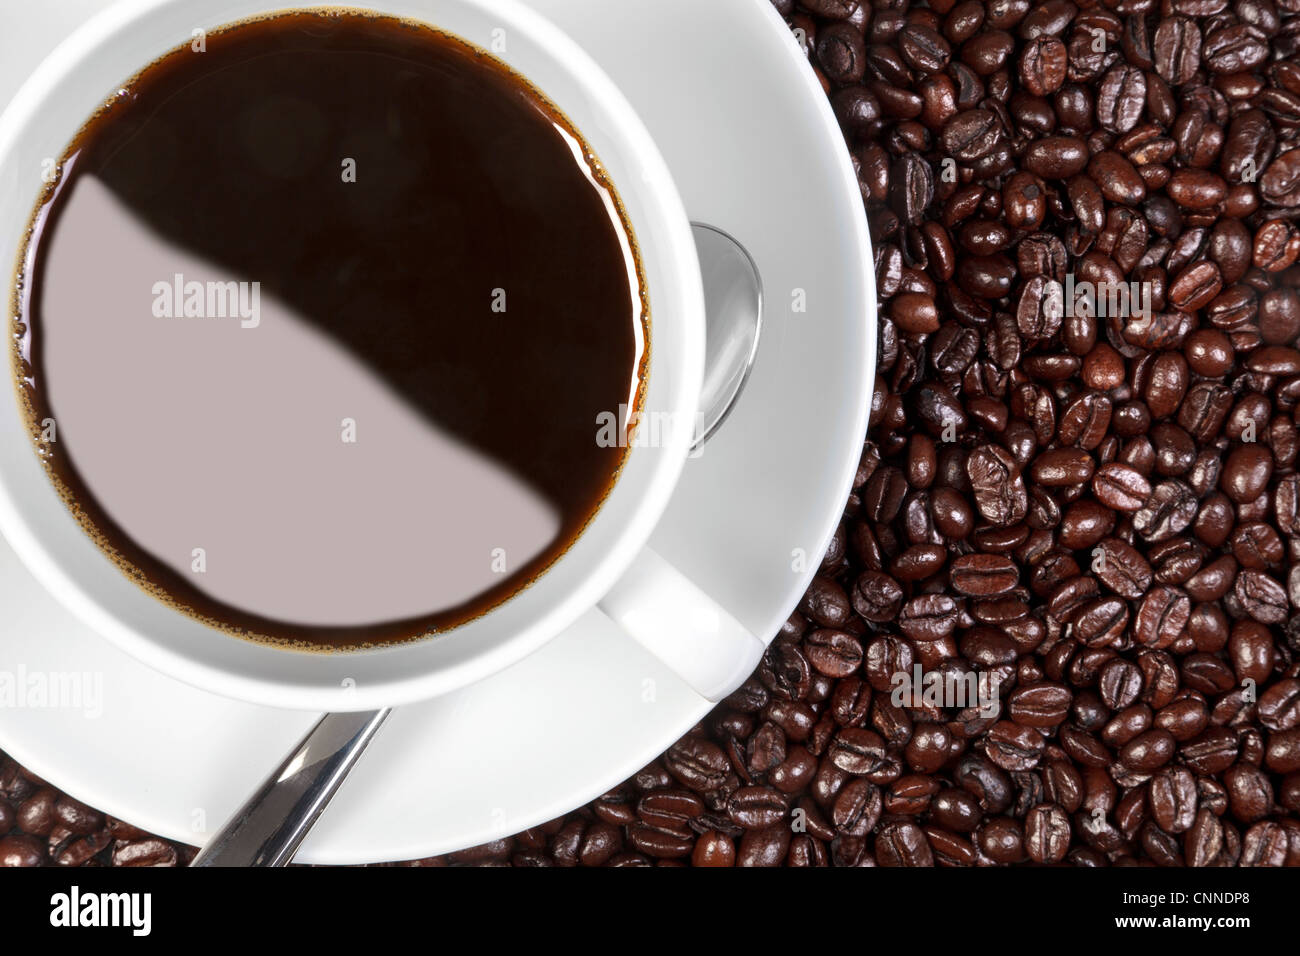 Overhead photo of a cup of coffee sitting on fresh roasted arabica and robusta coffee beans. - Stock Image